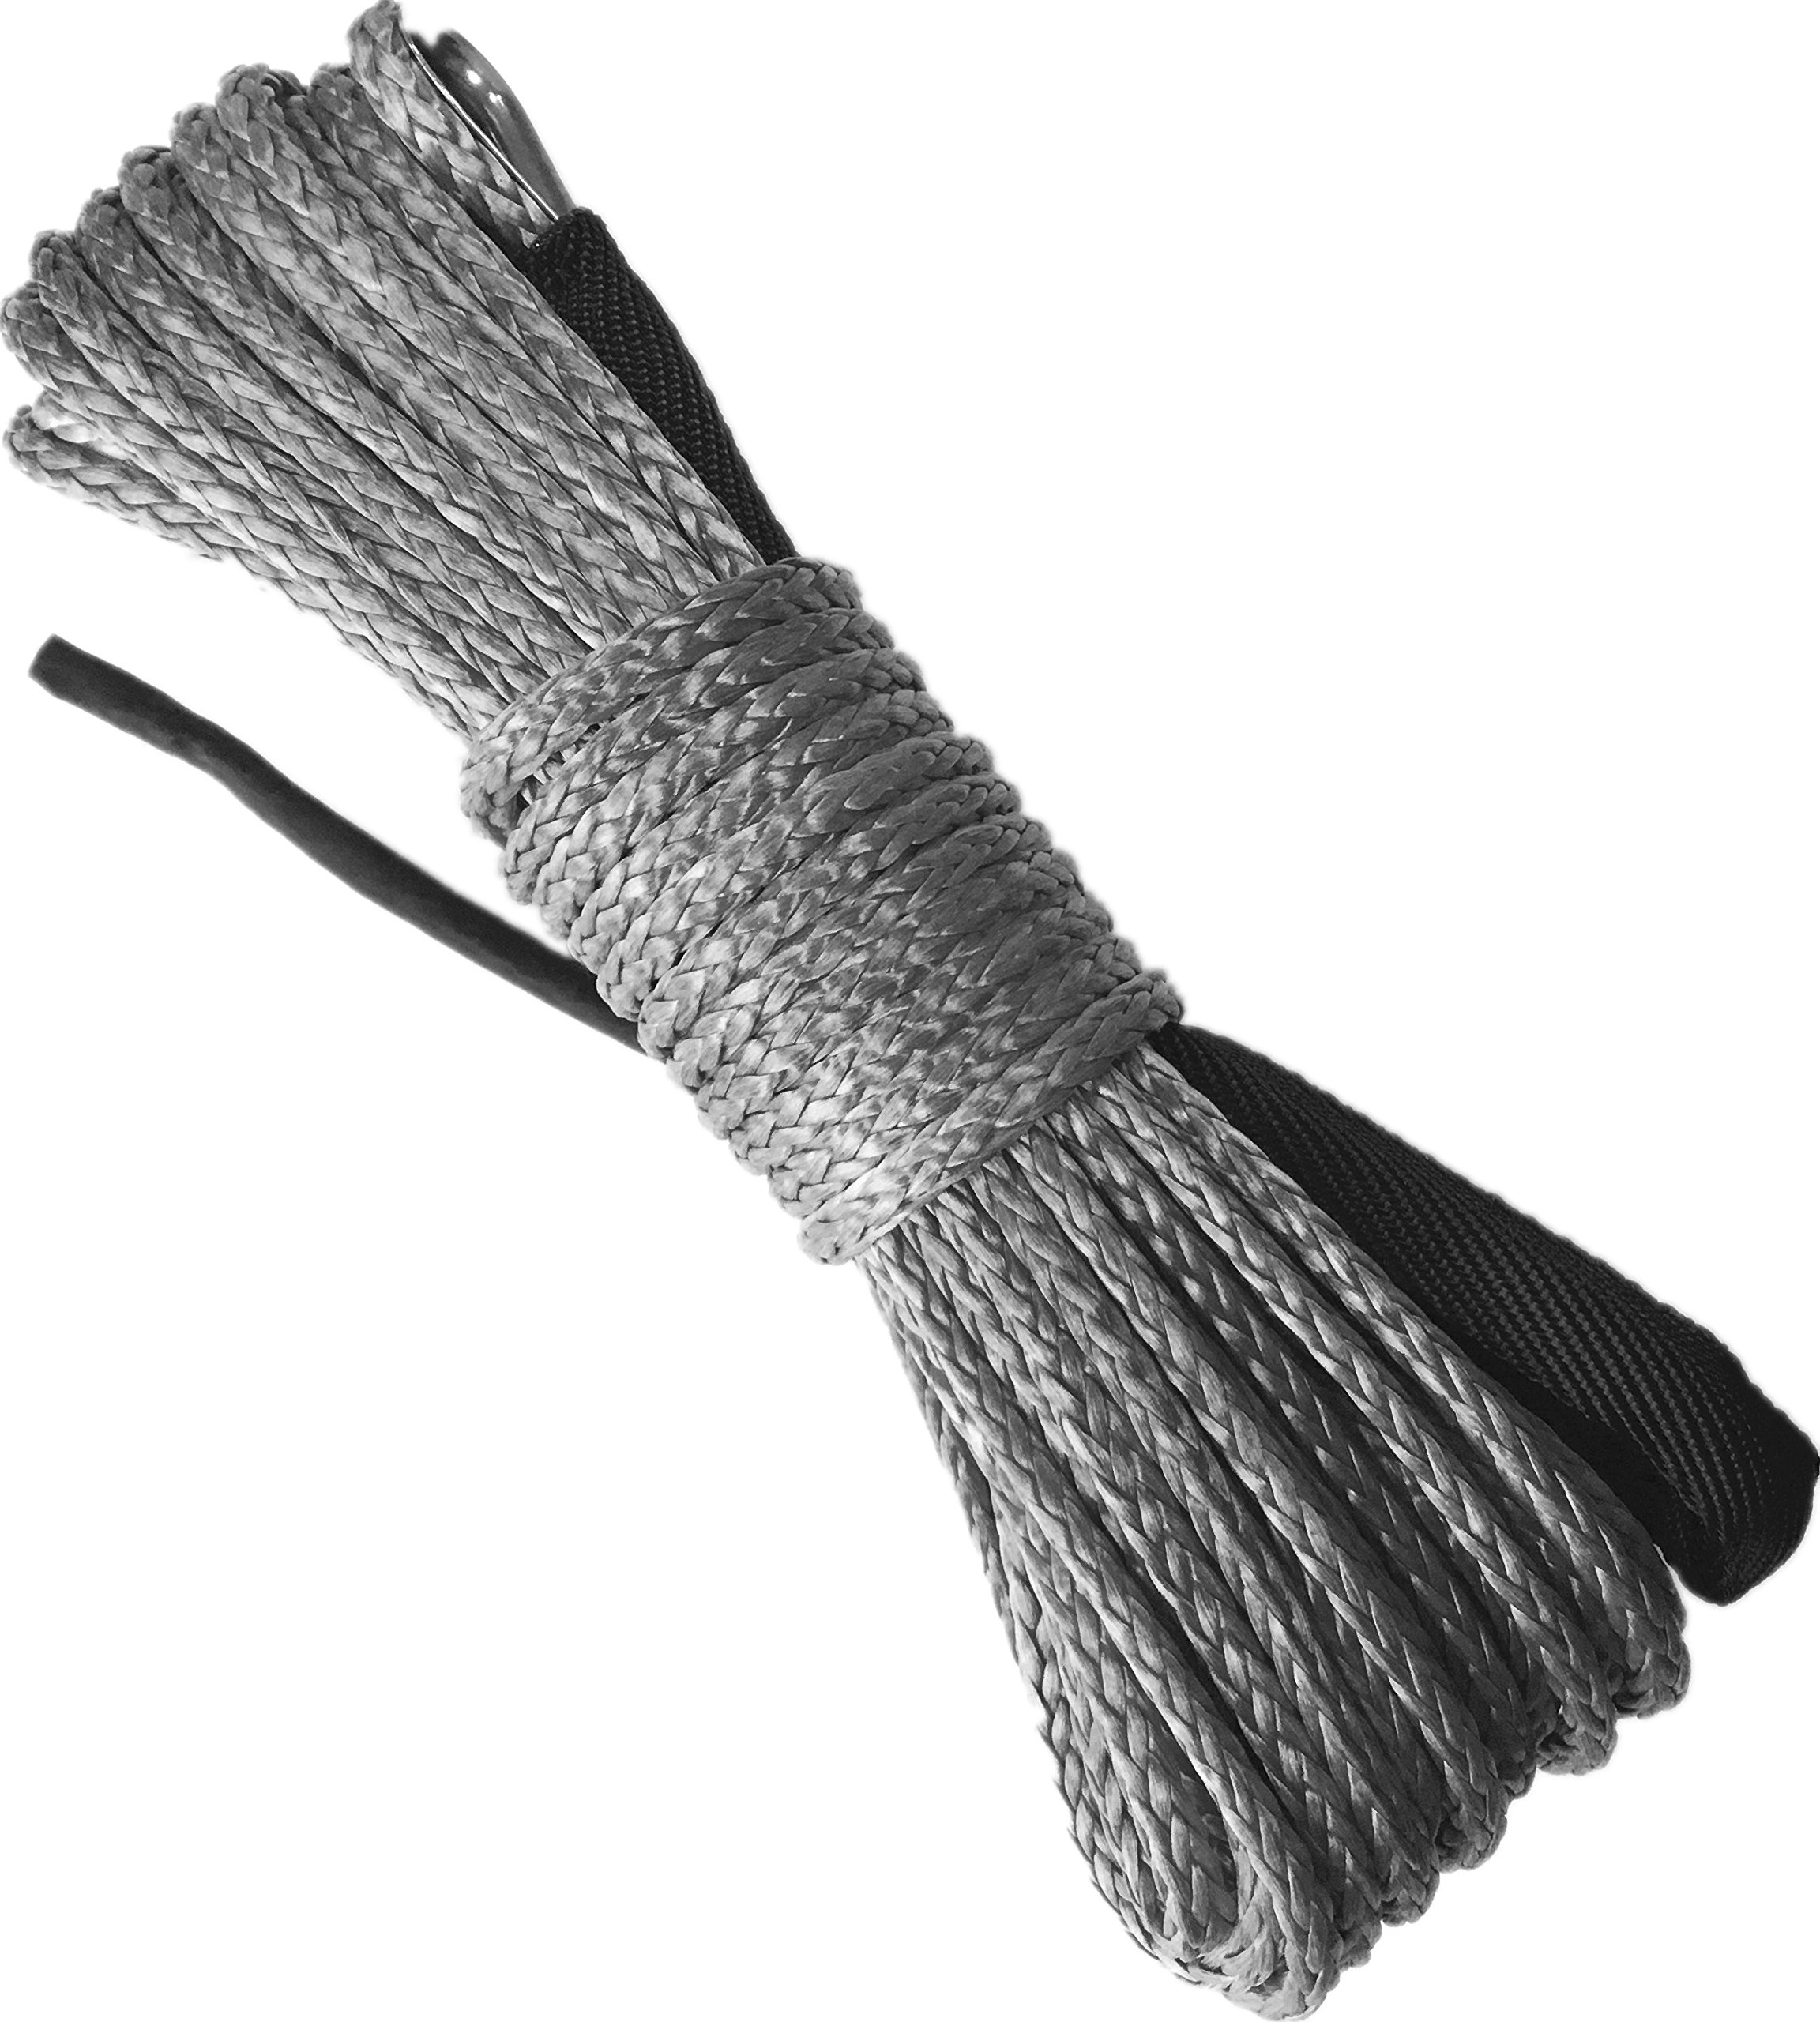 Cheap Dyneema Sk75 Winch Rope Find Deals On Quadboss 2500lb Wiring Diagram Get Quotations X Bull 1 4 49 Synthetic 10000lbs